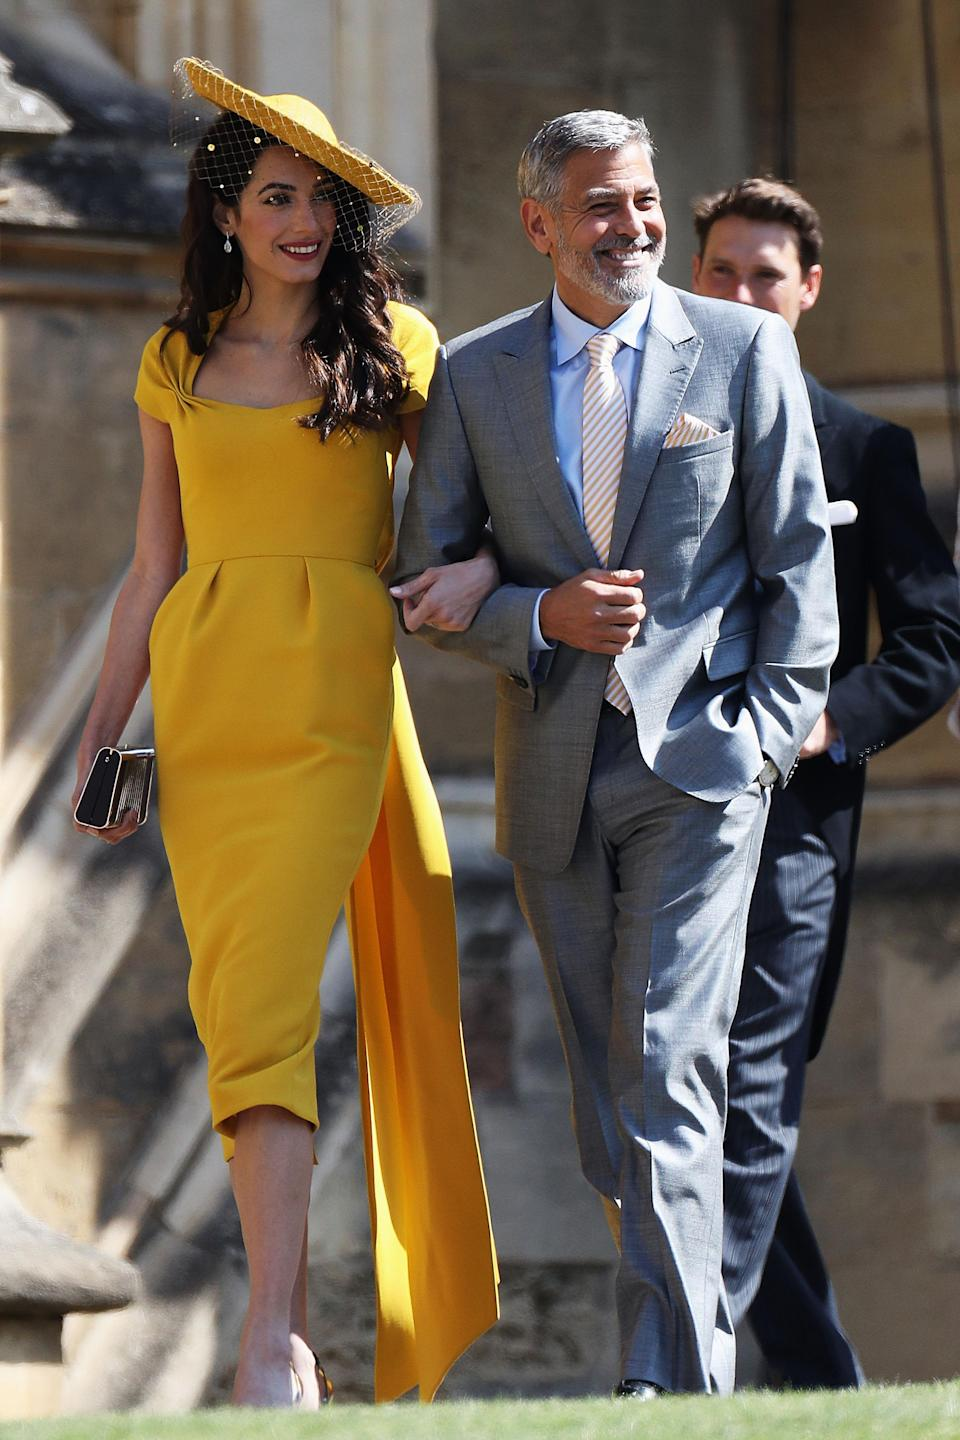 Amal and George Clooney arrive at St. George's Chapel. (Photo: Getty Images)